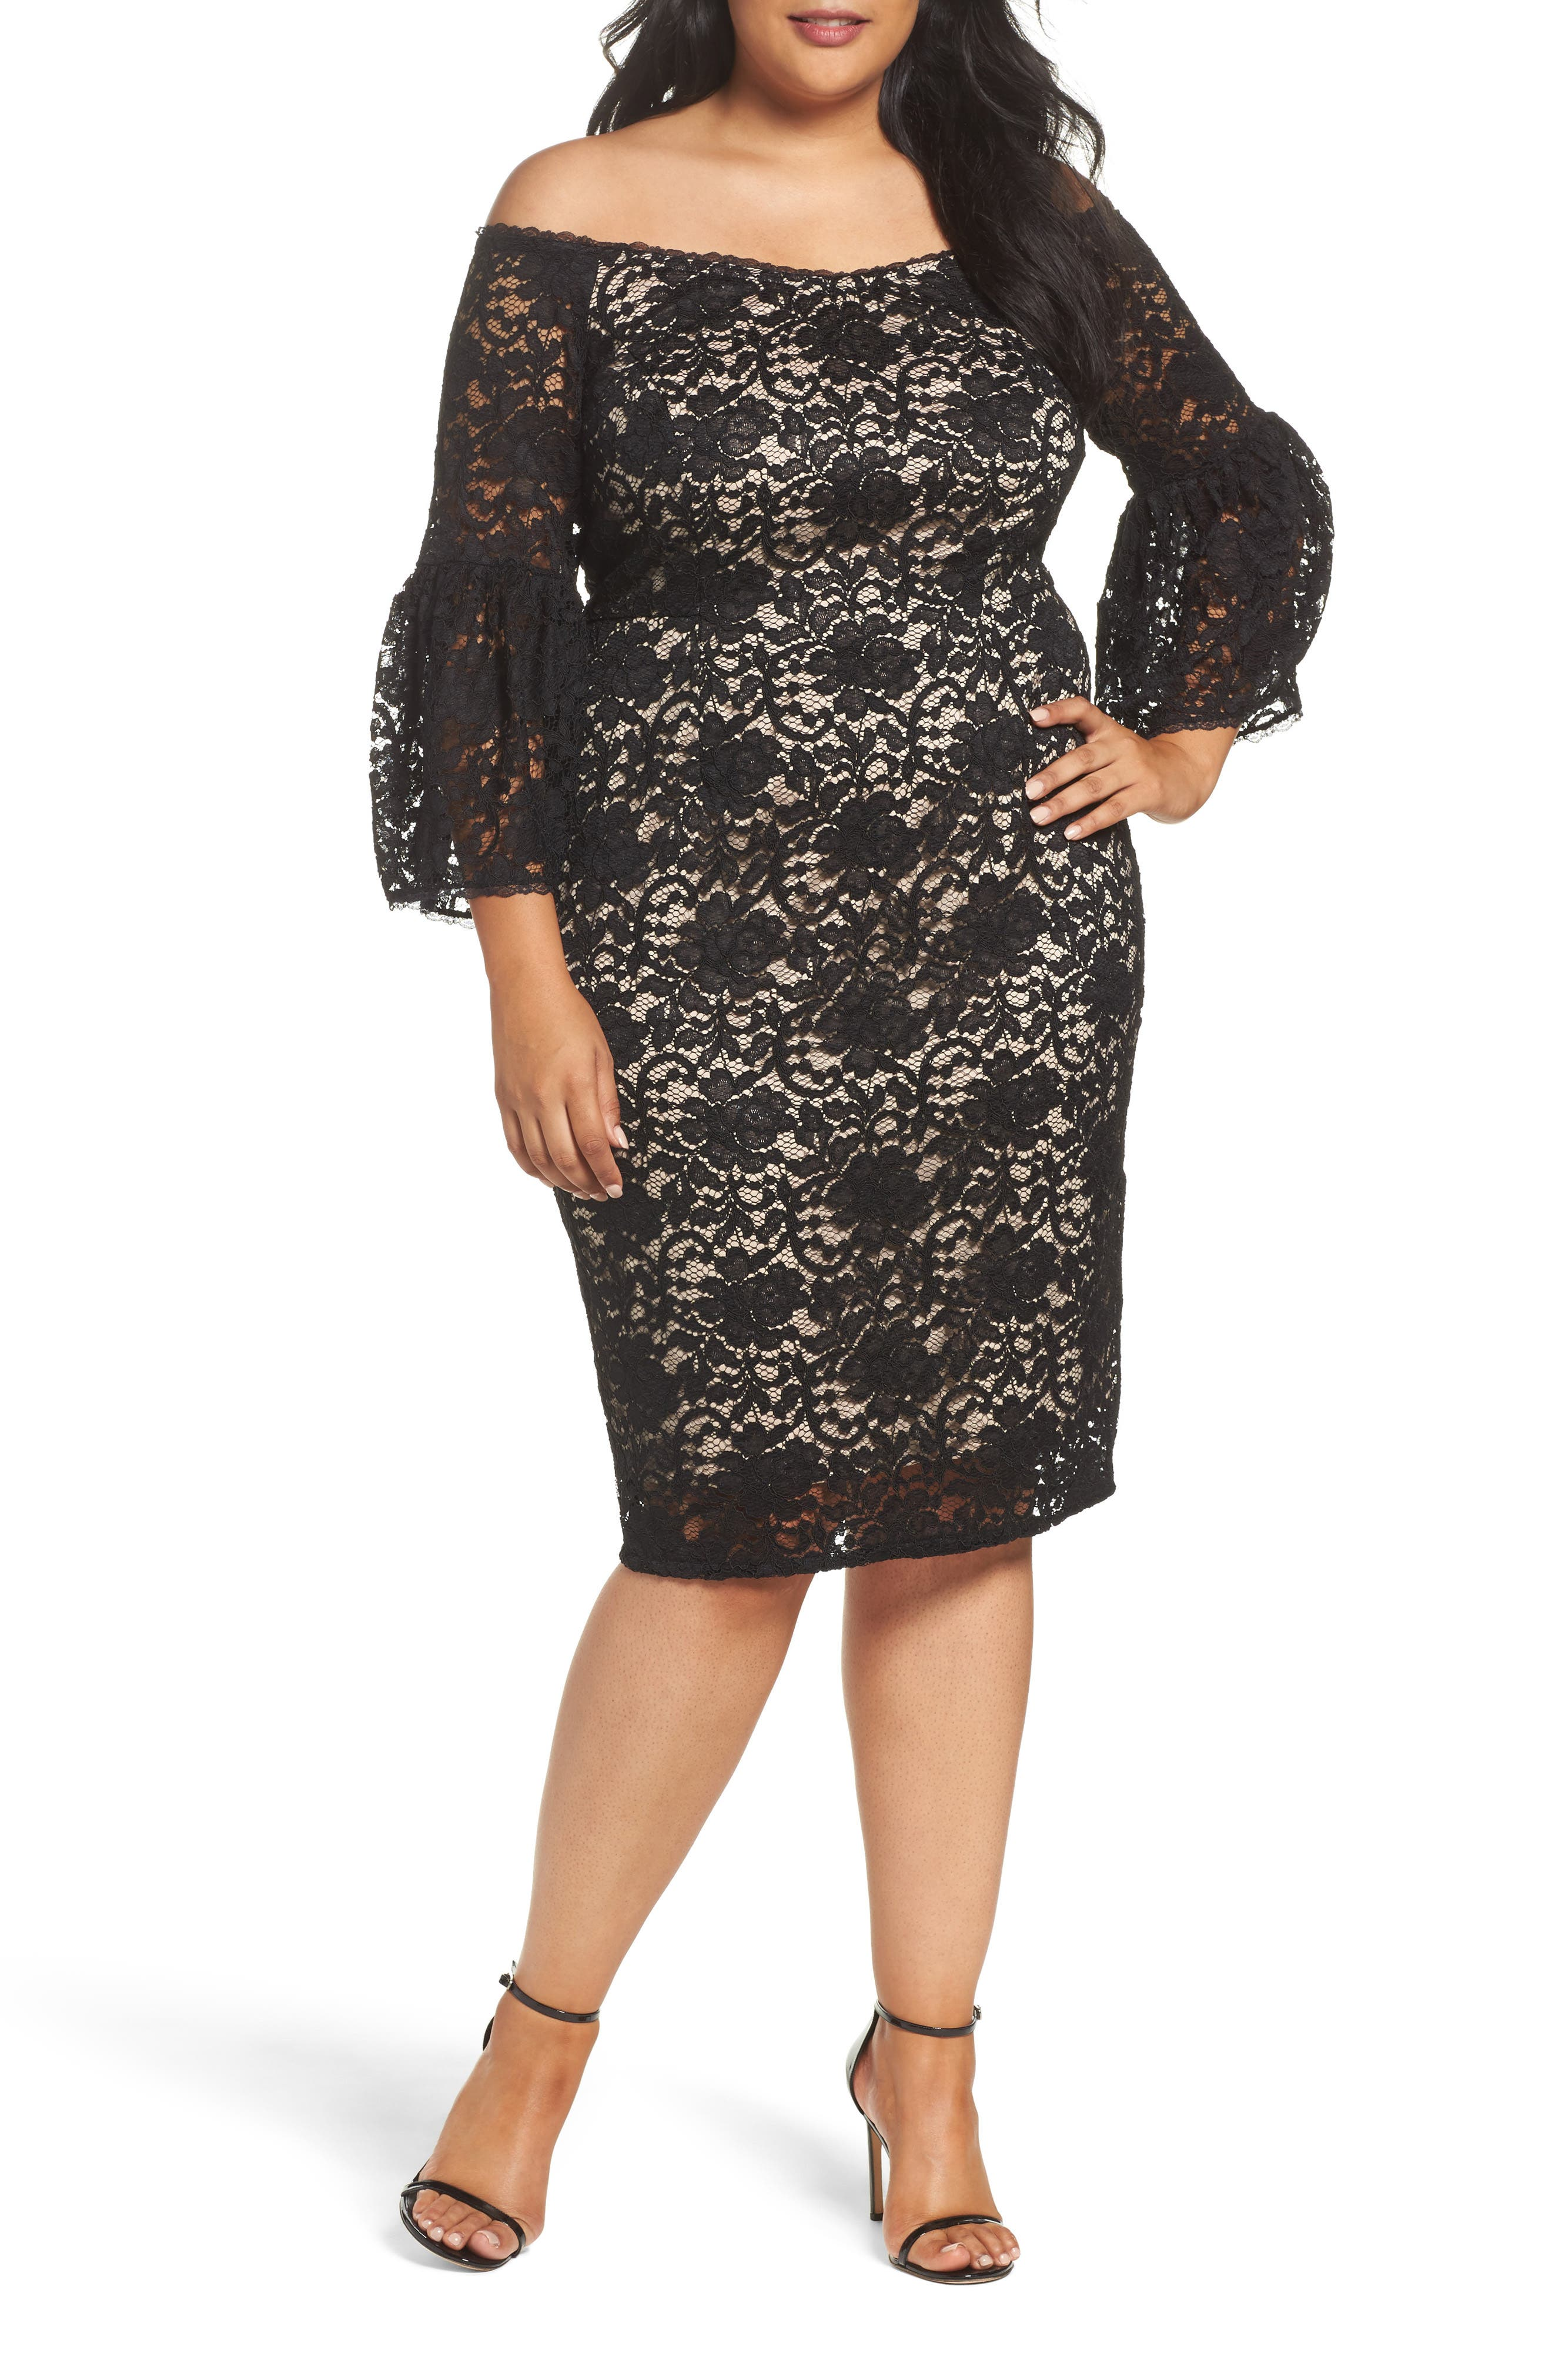 Alternate Image 1 Selected - Adrianna Papell Juliet Off the Shoulder Lace Dress (Plus Size)